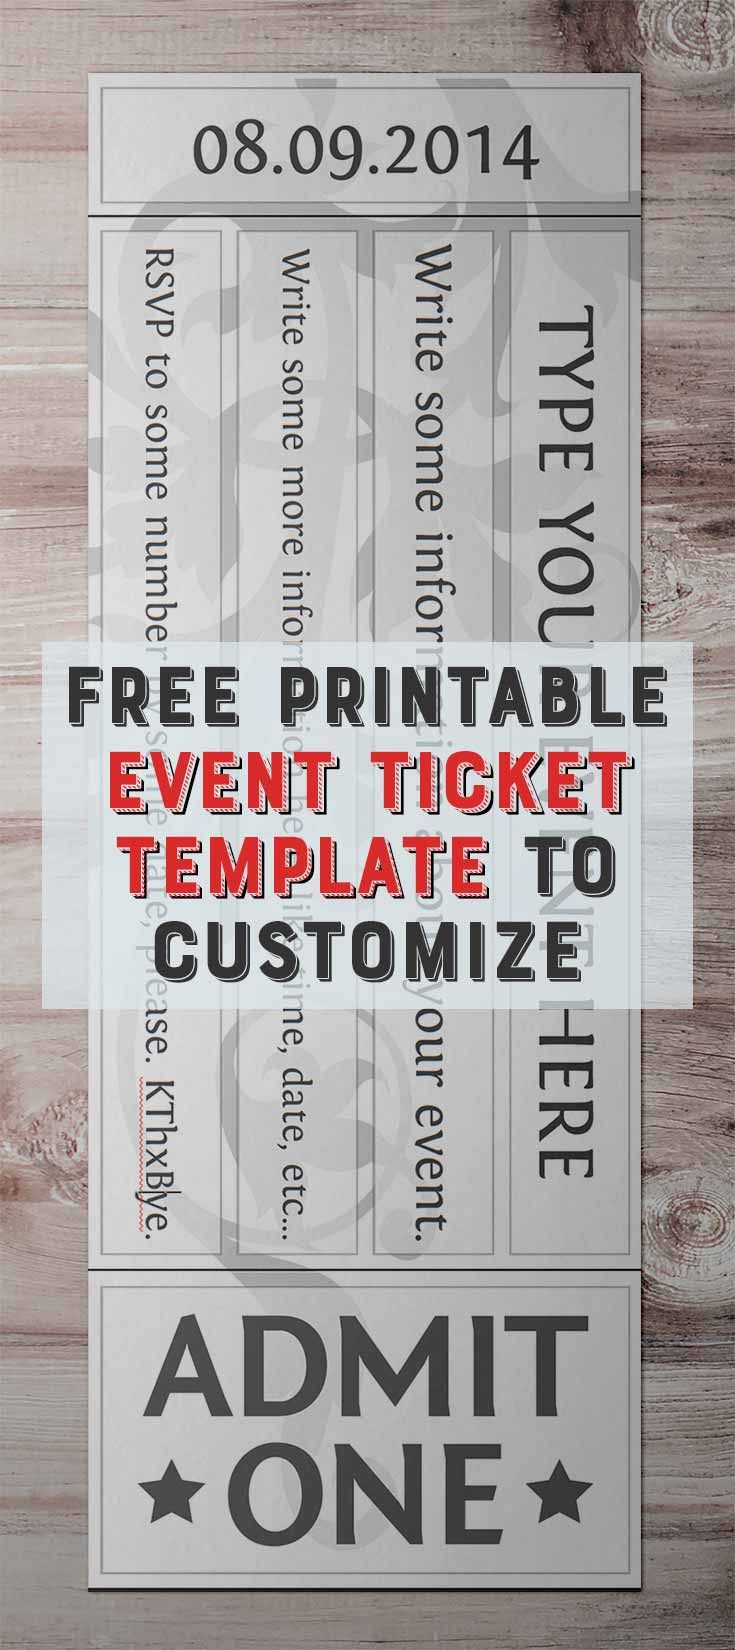 Free Printable Event Ticket Template To Customize Ticket Template Ticket Template Free Ticket Template Free Printables